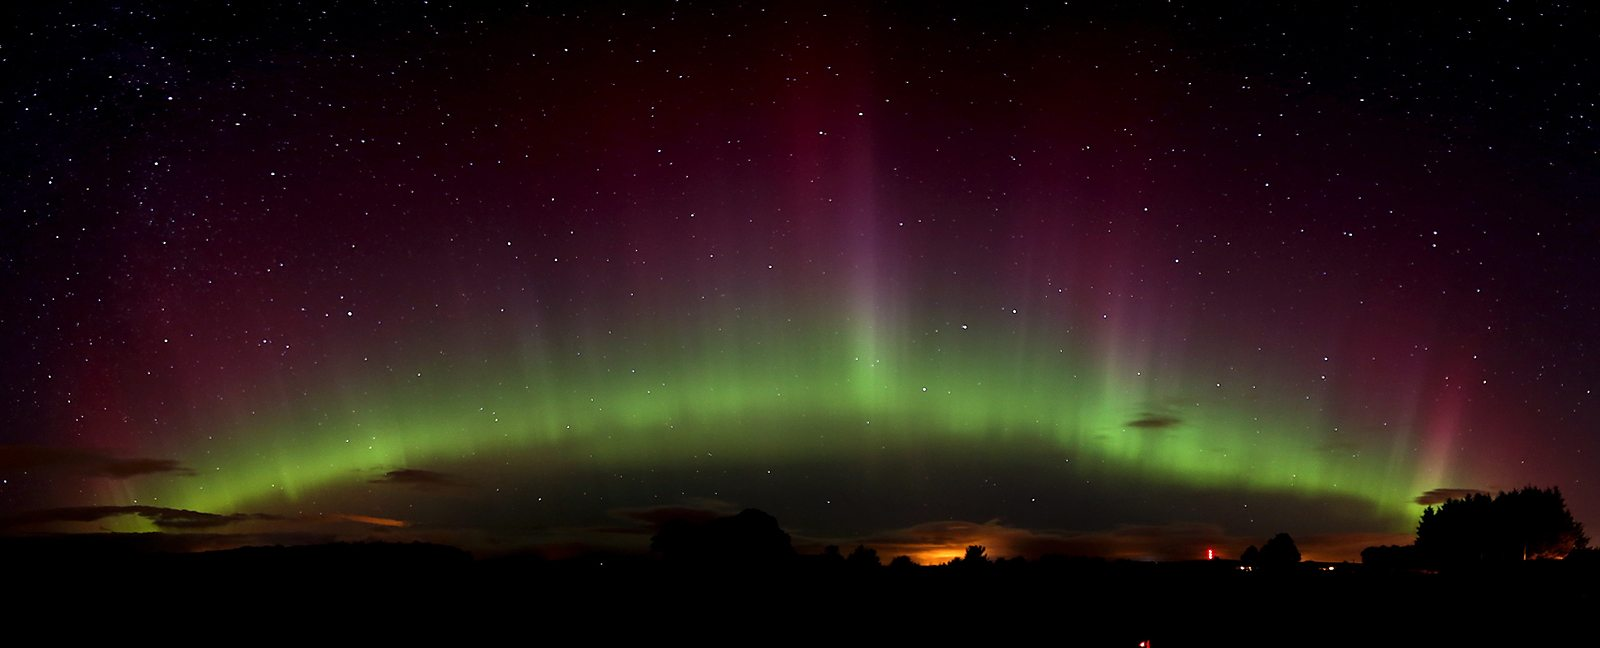 How Can I See The Northern Lights In The UK?